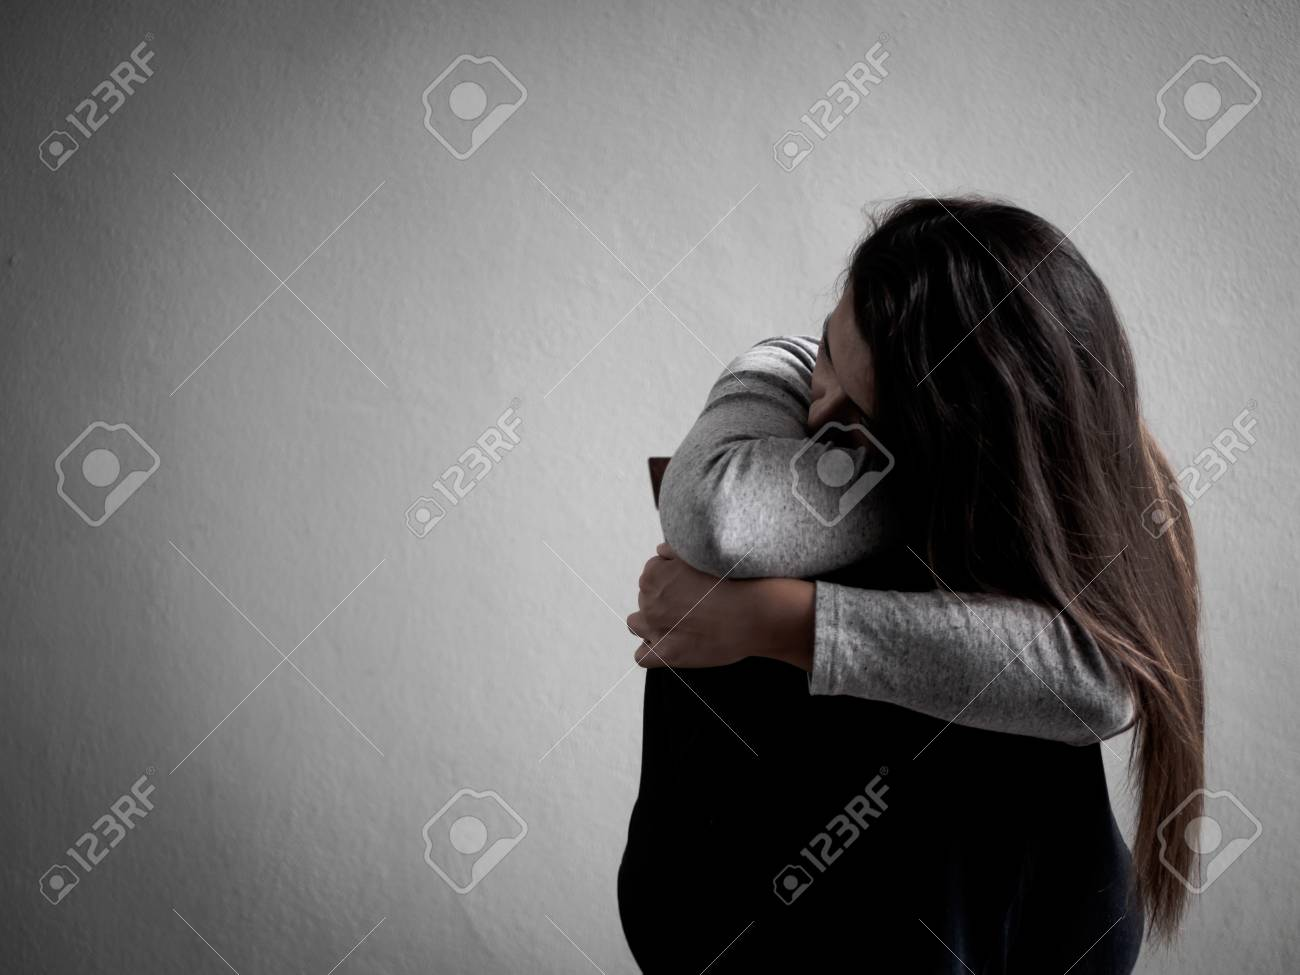 Depressed Broken Hearted Woman Sitting Alone In Dark Room At Stock Photo Picture And Royalty Free Image Image 95805088